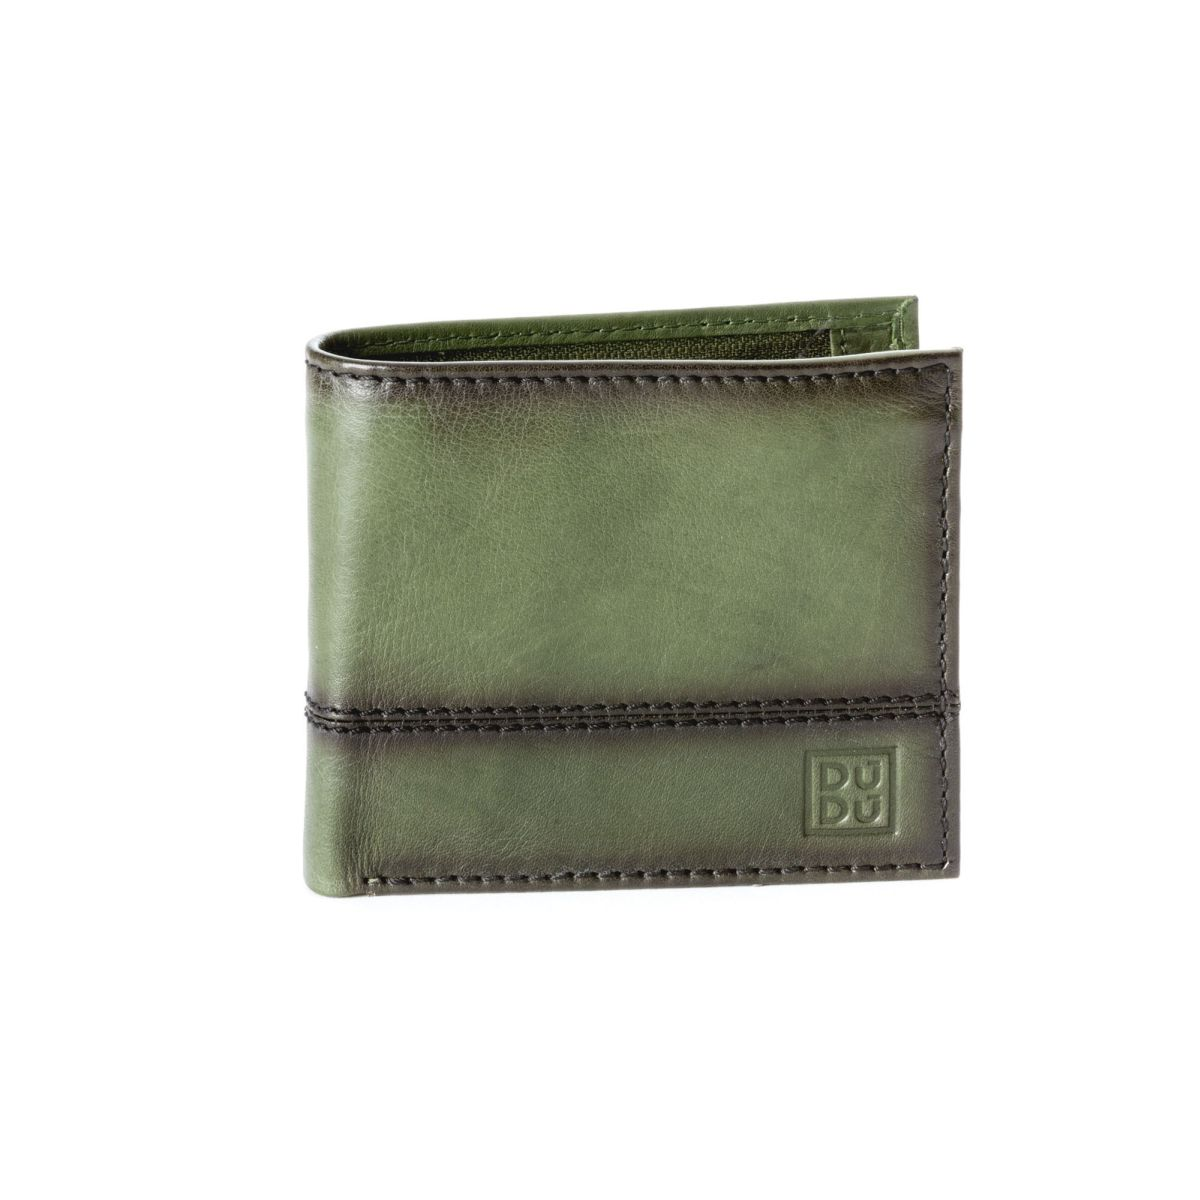 Unique Leather Wallet With Coin Purse - Green